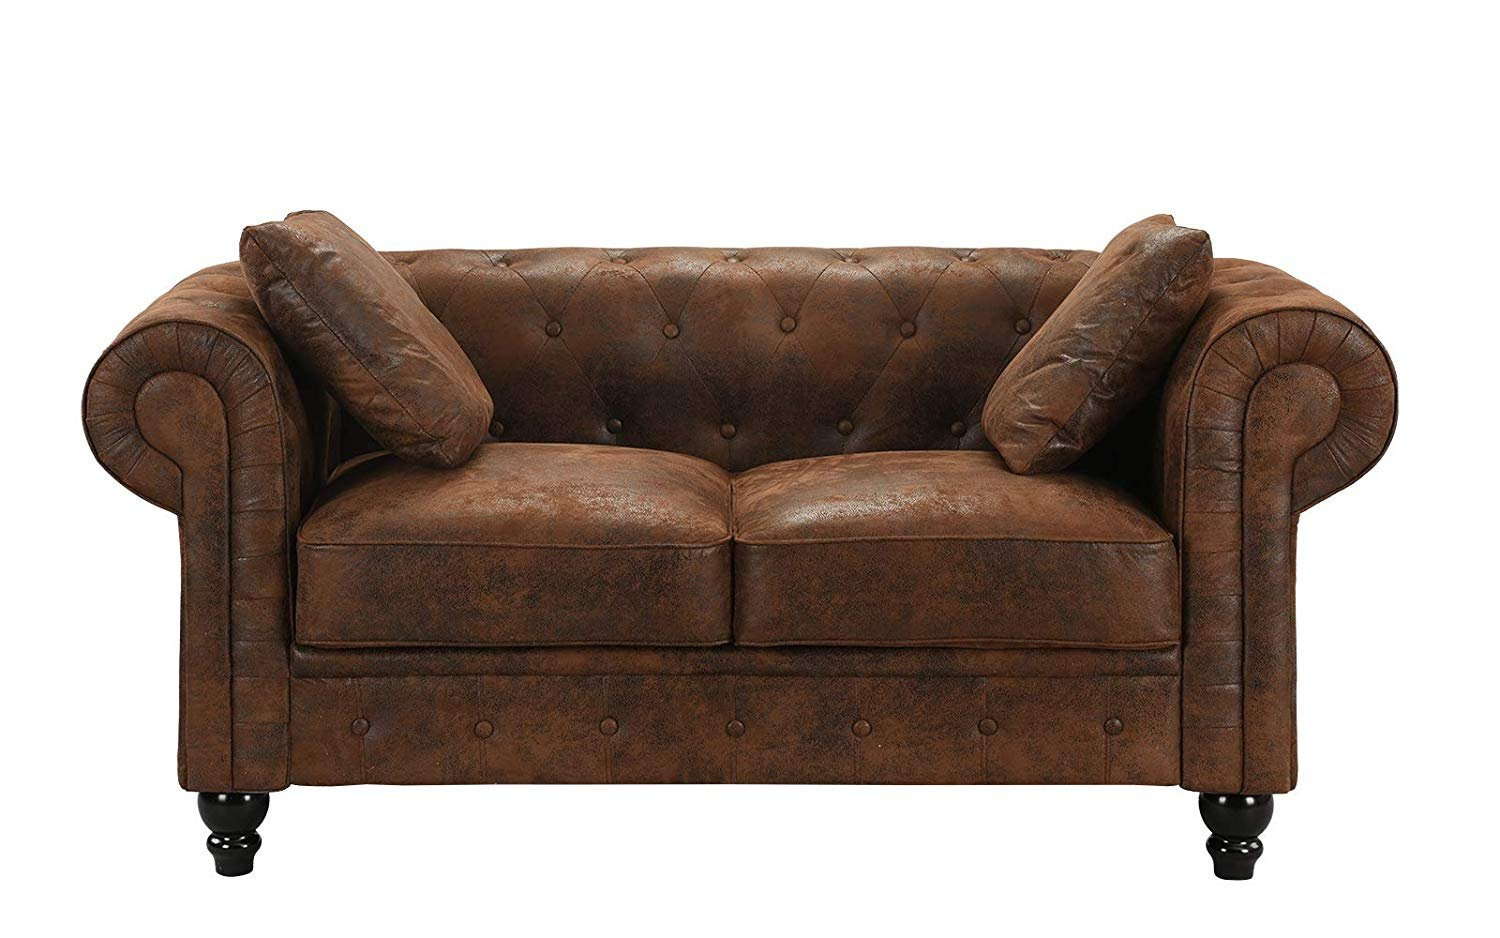 Details about Distressed Rustic Chesterfield Faux Suede Loveseat Sofa 2  Seat Couch, Brown